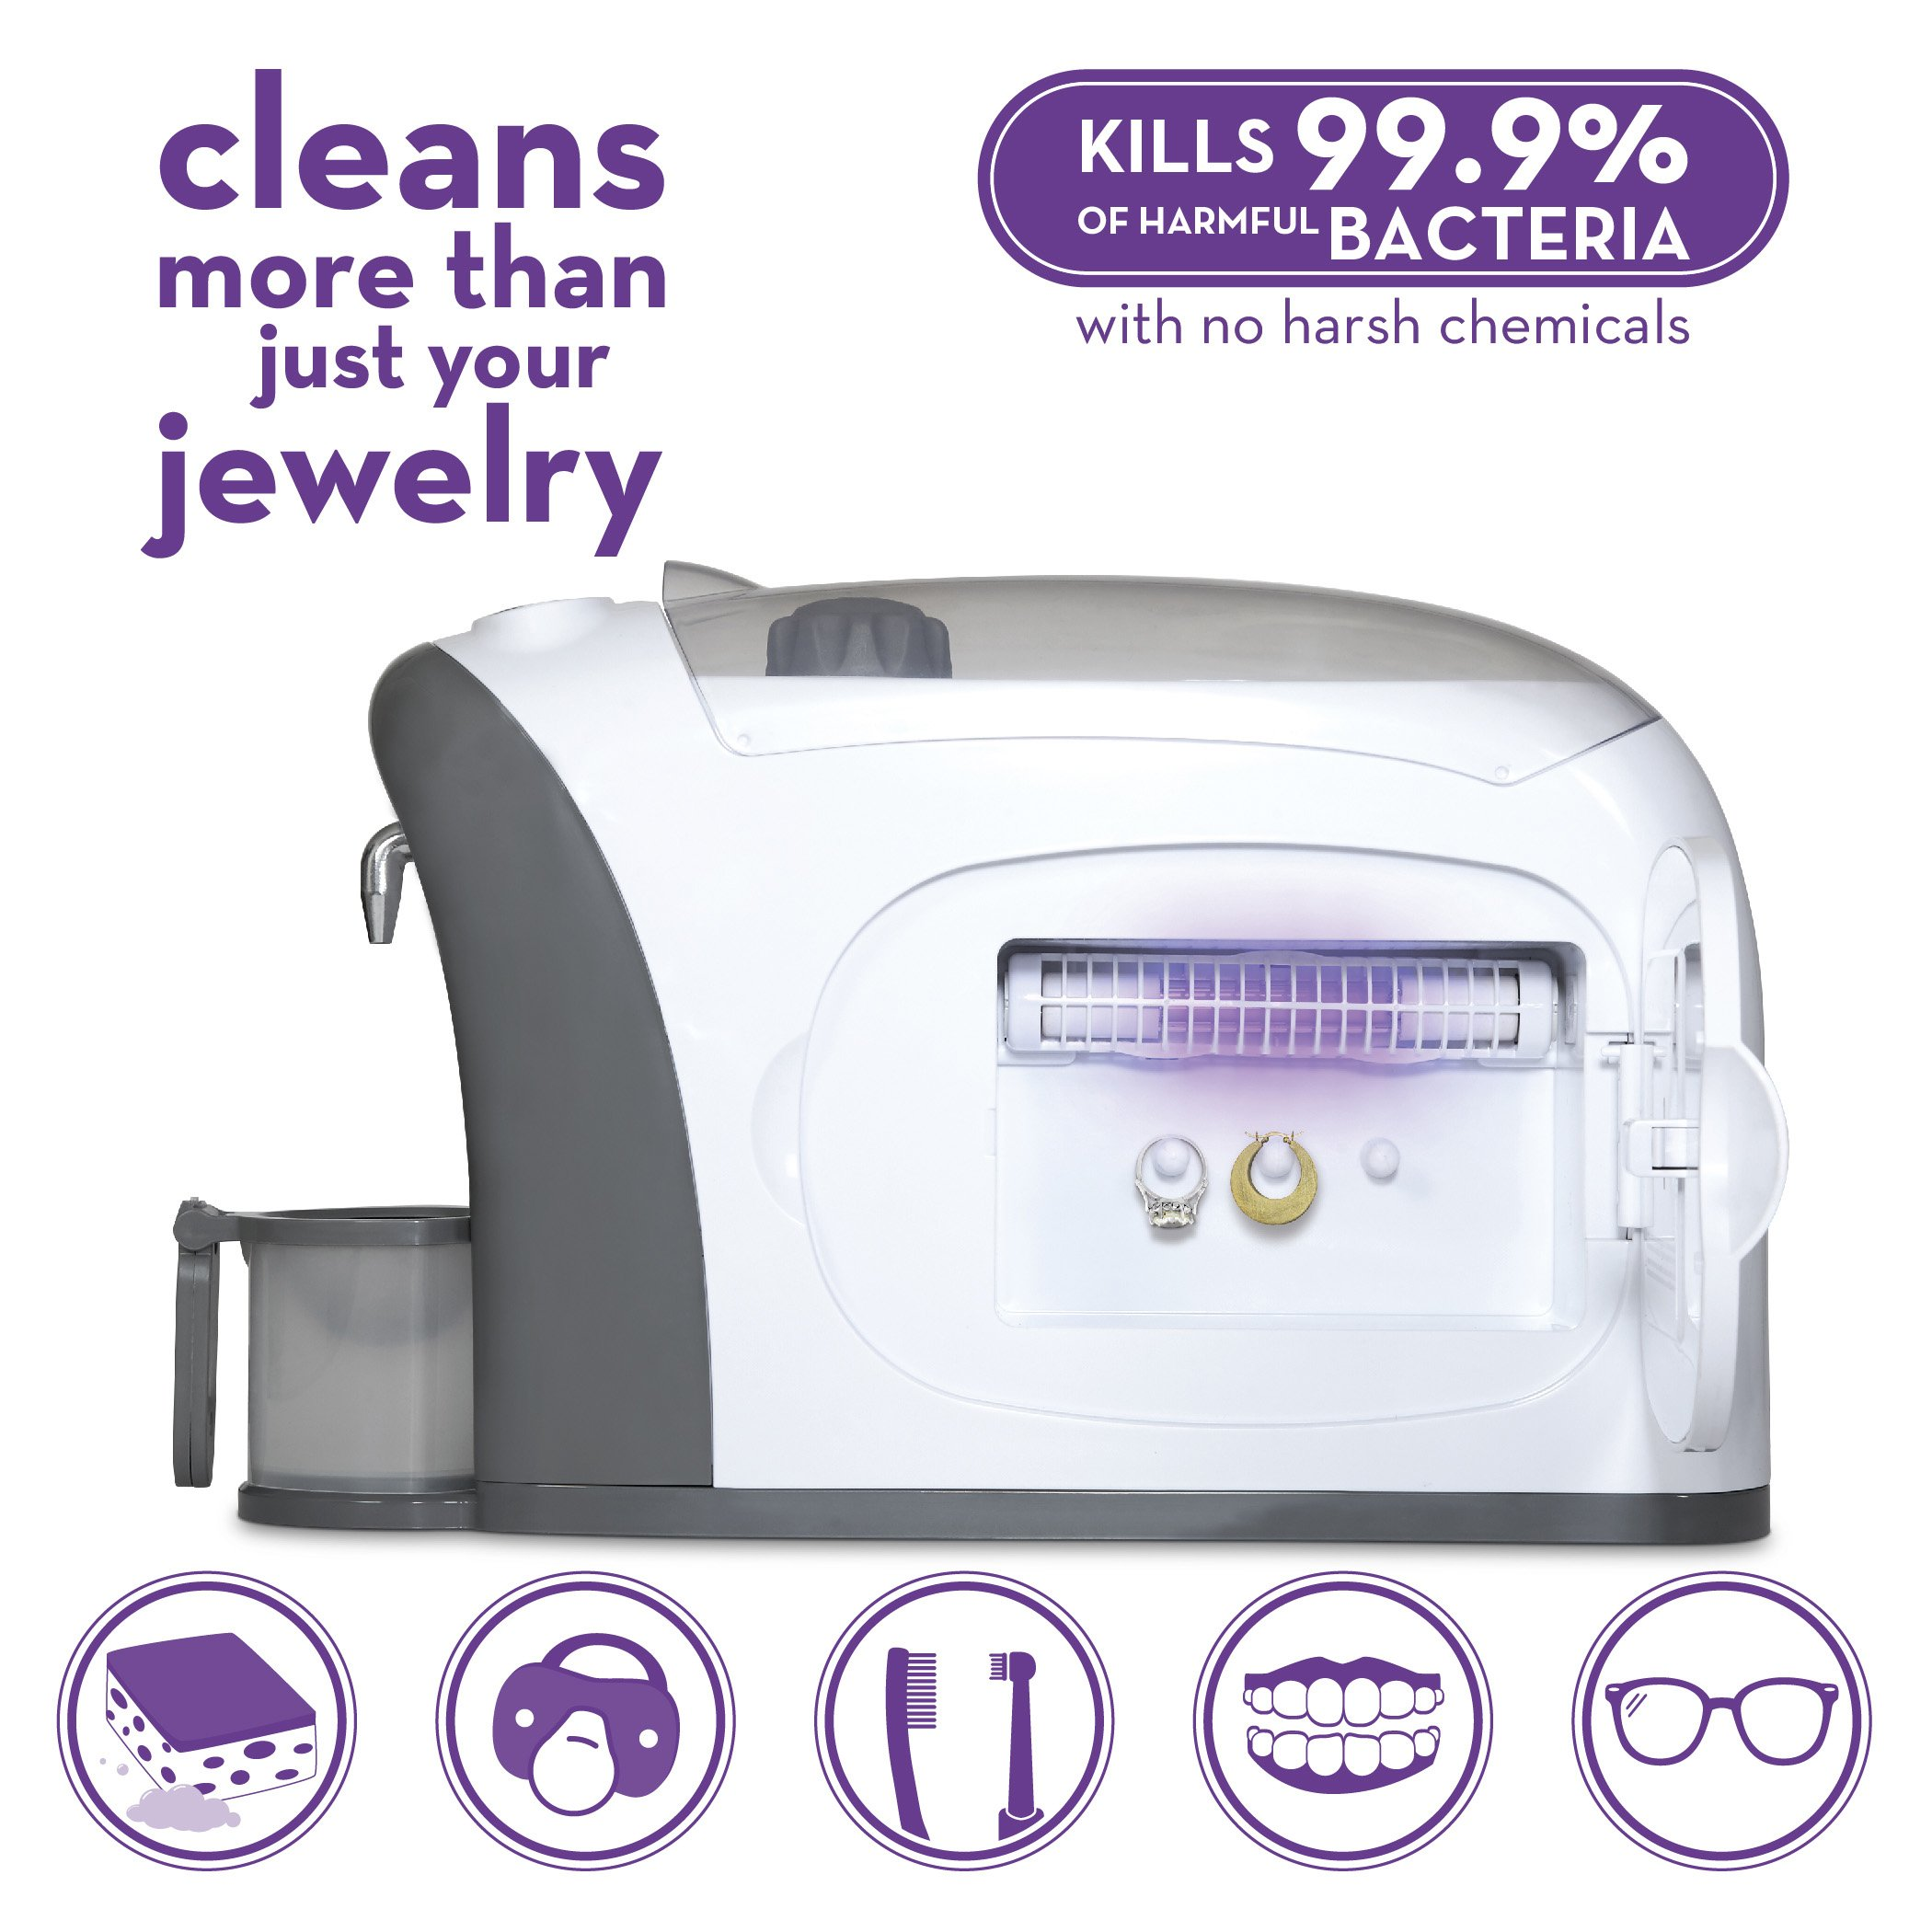 Dazzle 3 in 1 Ultrasonic Jewelry Cleaner Machine, Jewelry Steam Cleaner, UV Light Sanitizer (Kills 99.9% Bacteria) | Professional Grade for Rings, Watches, Earrings, Pacifiers, Eyeglasses, Dentures by Sienna Appliances (Image #6)